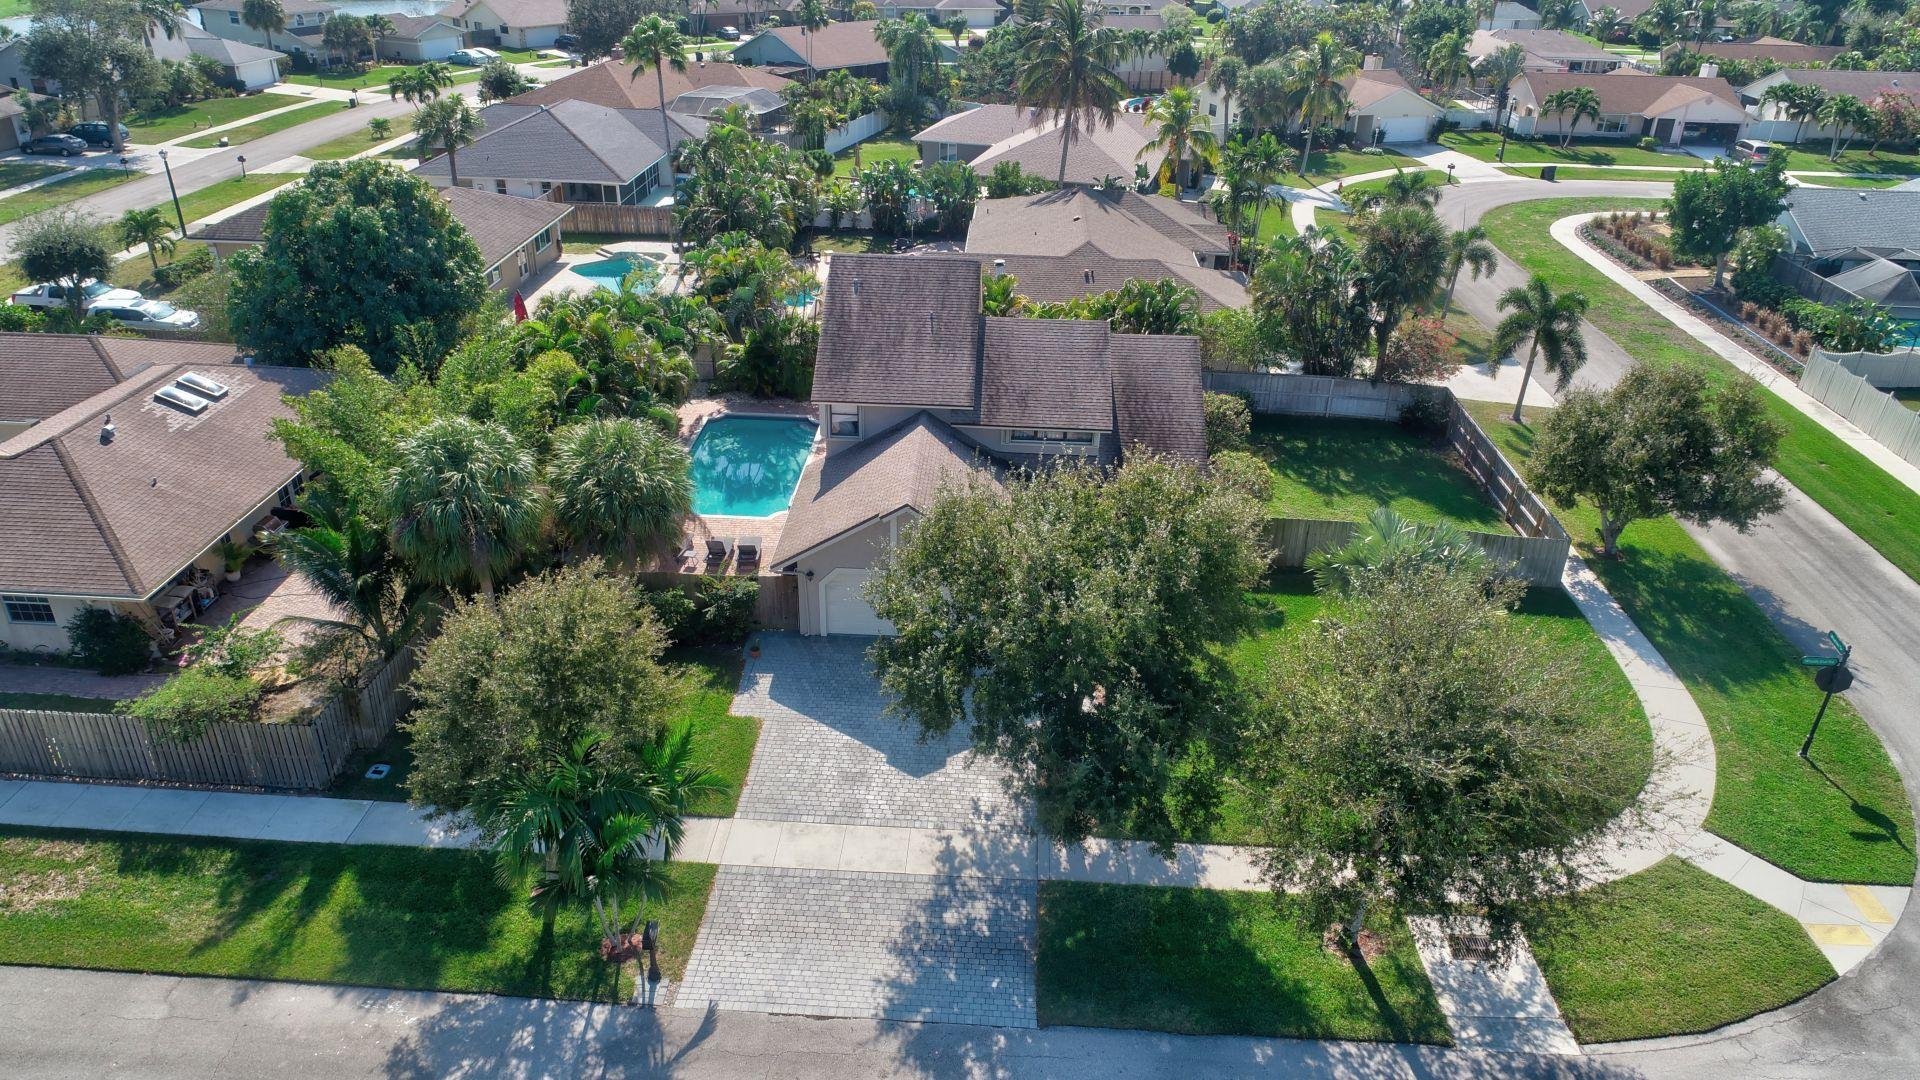 4140 Woods End Road, Boca Raton, Florida 33487, 3 Bedrooms Bedrooms, ,2 BathroomsBathrooms,Single Family,For Sale,PHEASANT WALK,Woods End,RX-10496691